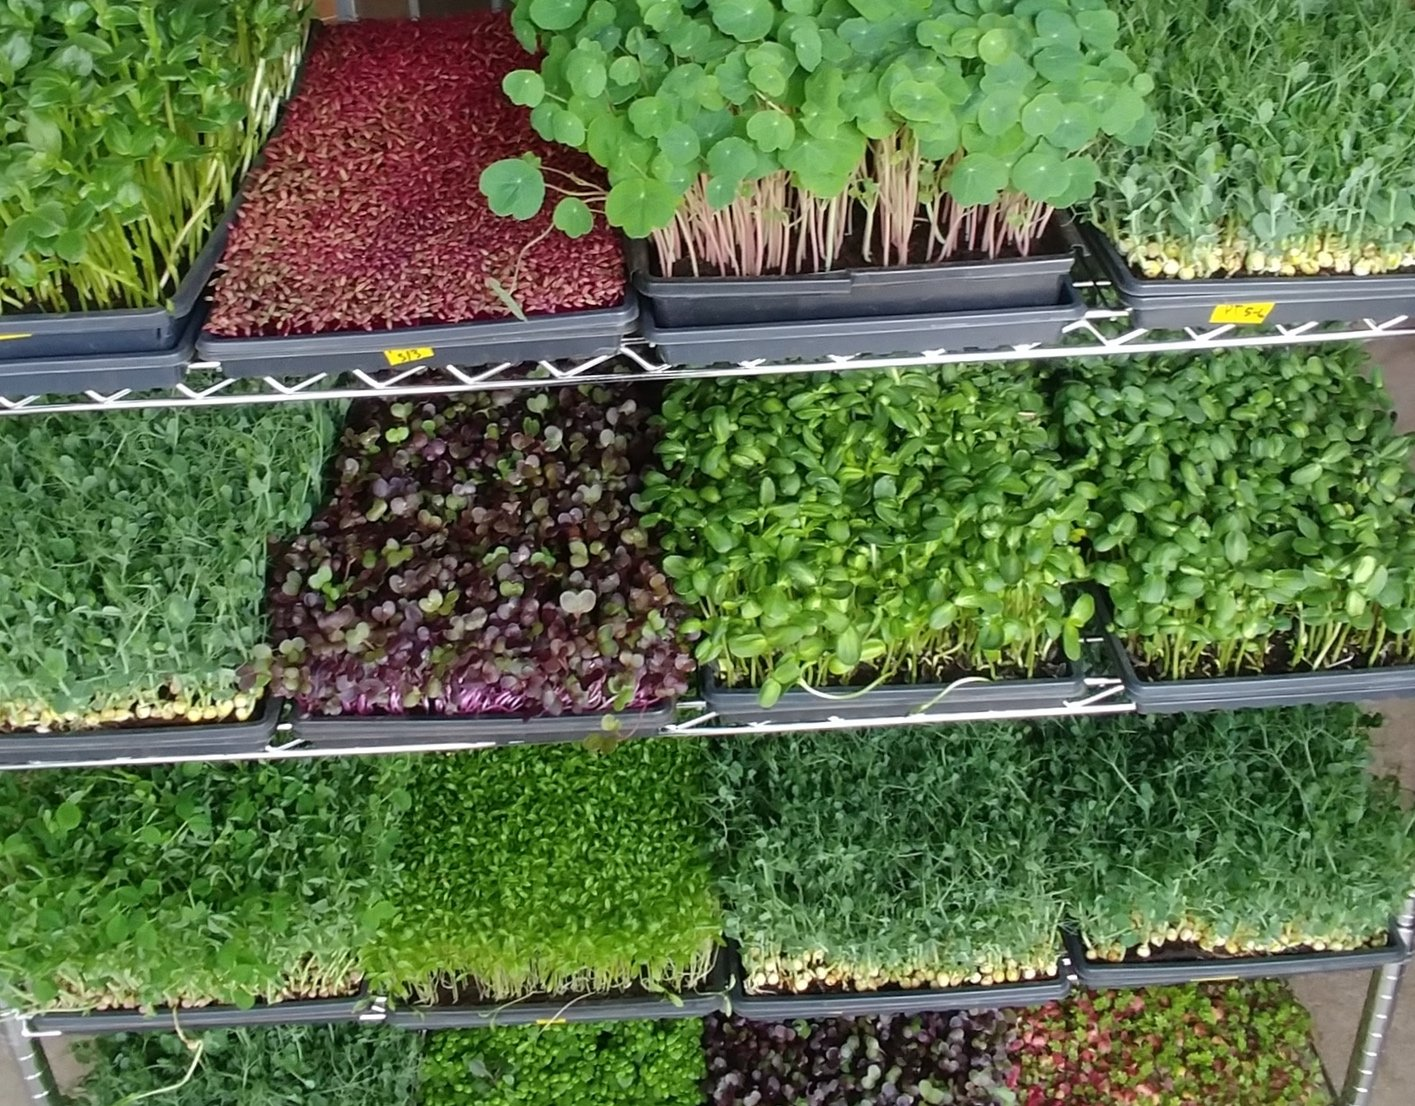 Closed Loop Farms specializes in microgreens, grown indoors. These are very young versions of vegetable plants, packed with nutrients. (Courtesy of Closed Loop Farms)